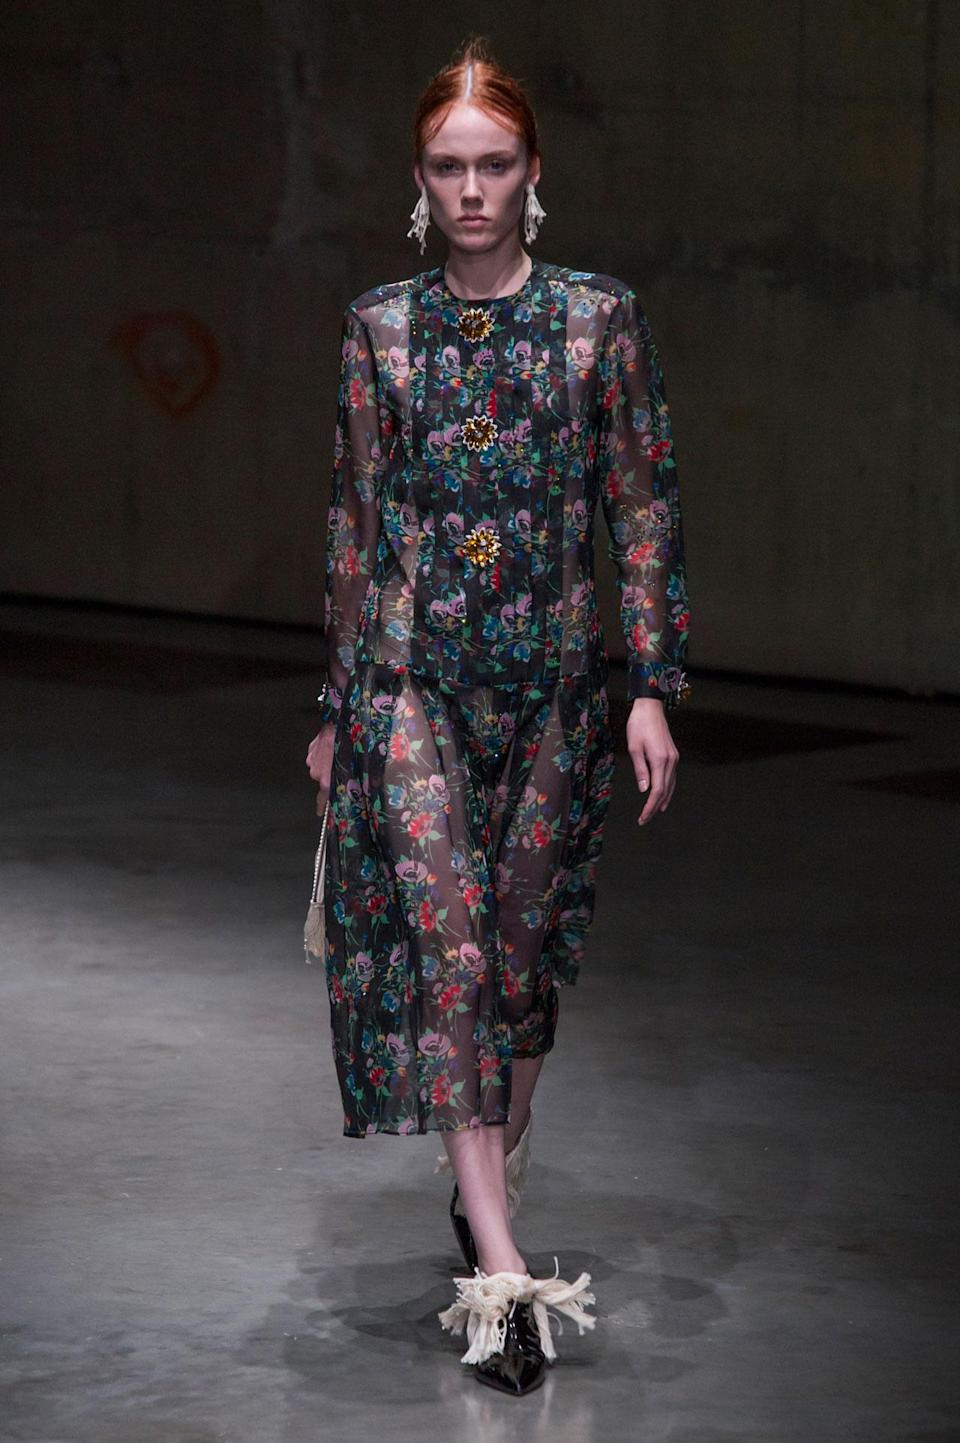 <p>Sheer black, green and red floral dress from the SS18 Christopher Kane collection. (Photo: ImaxTree) </p>